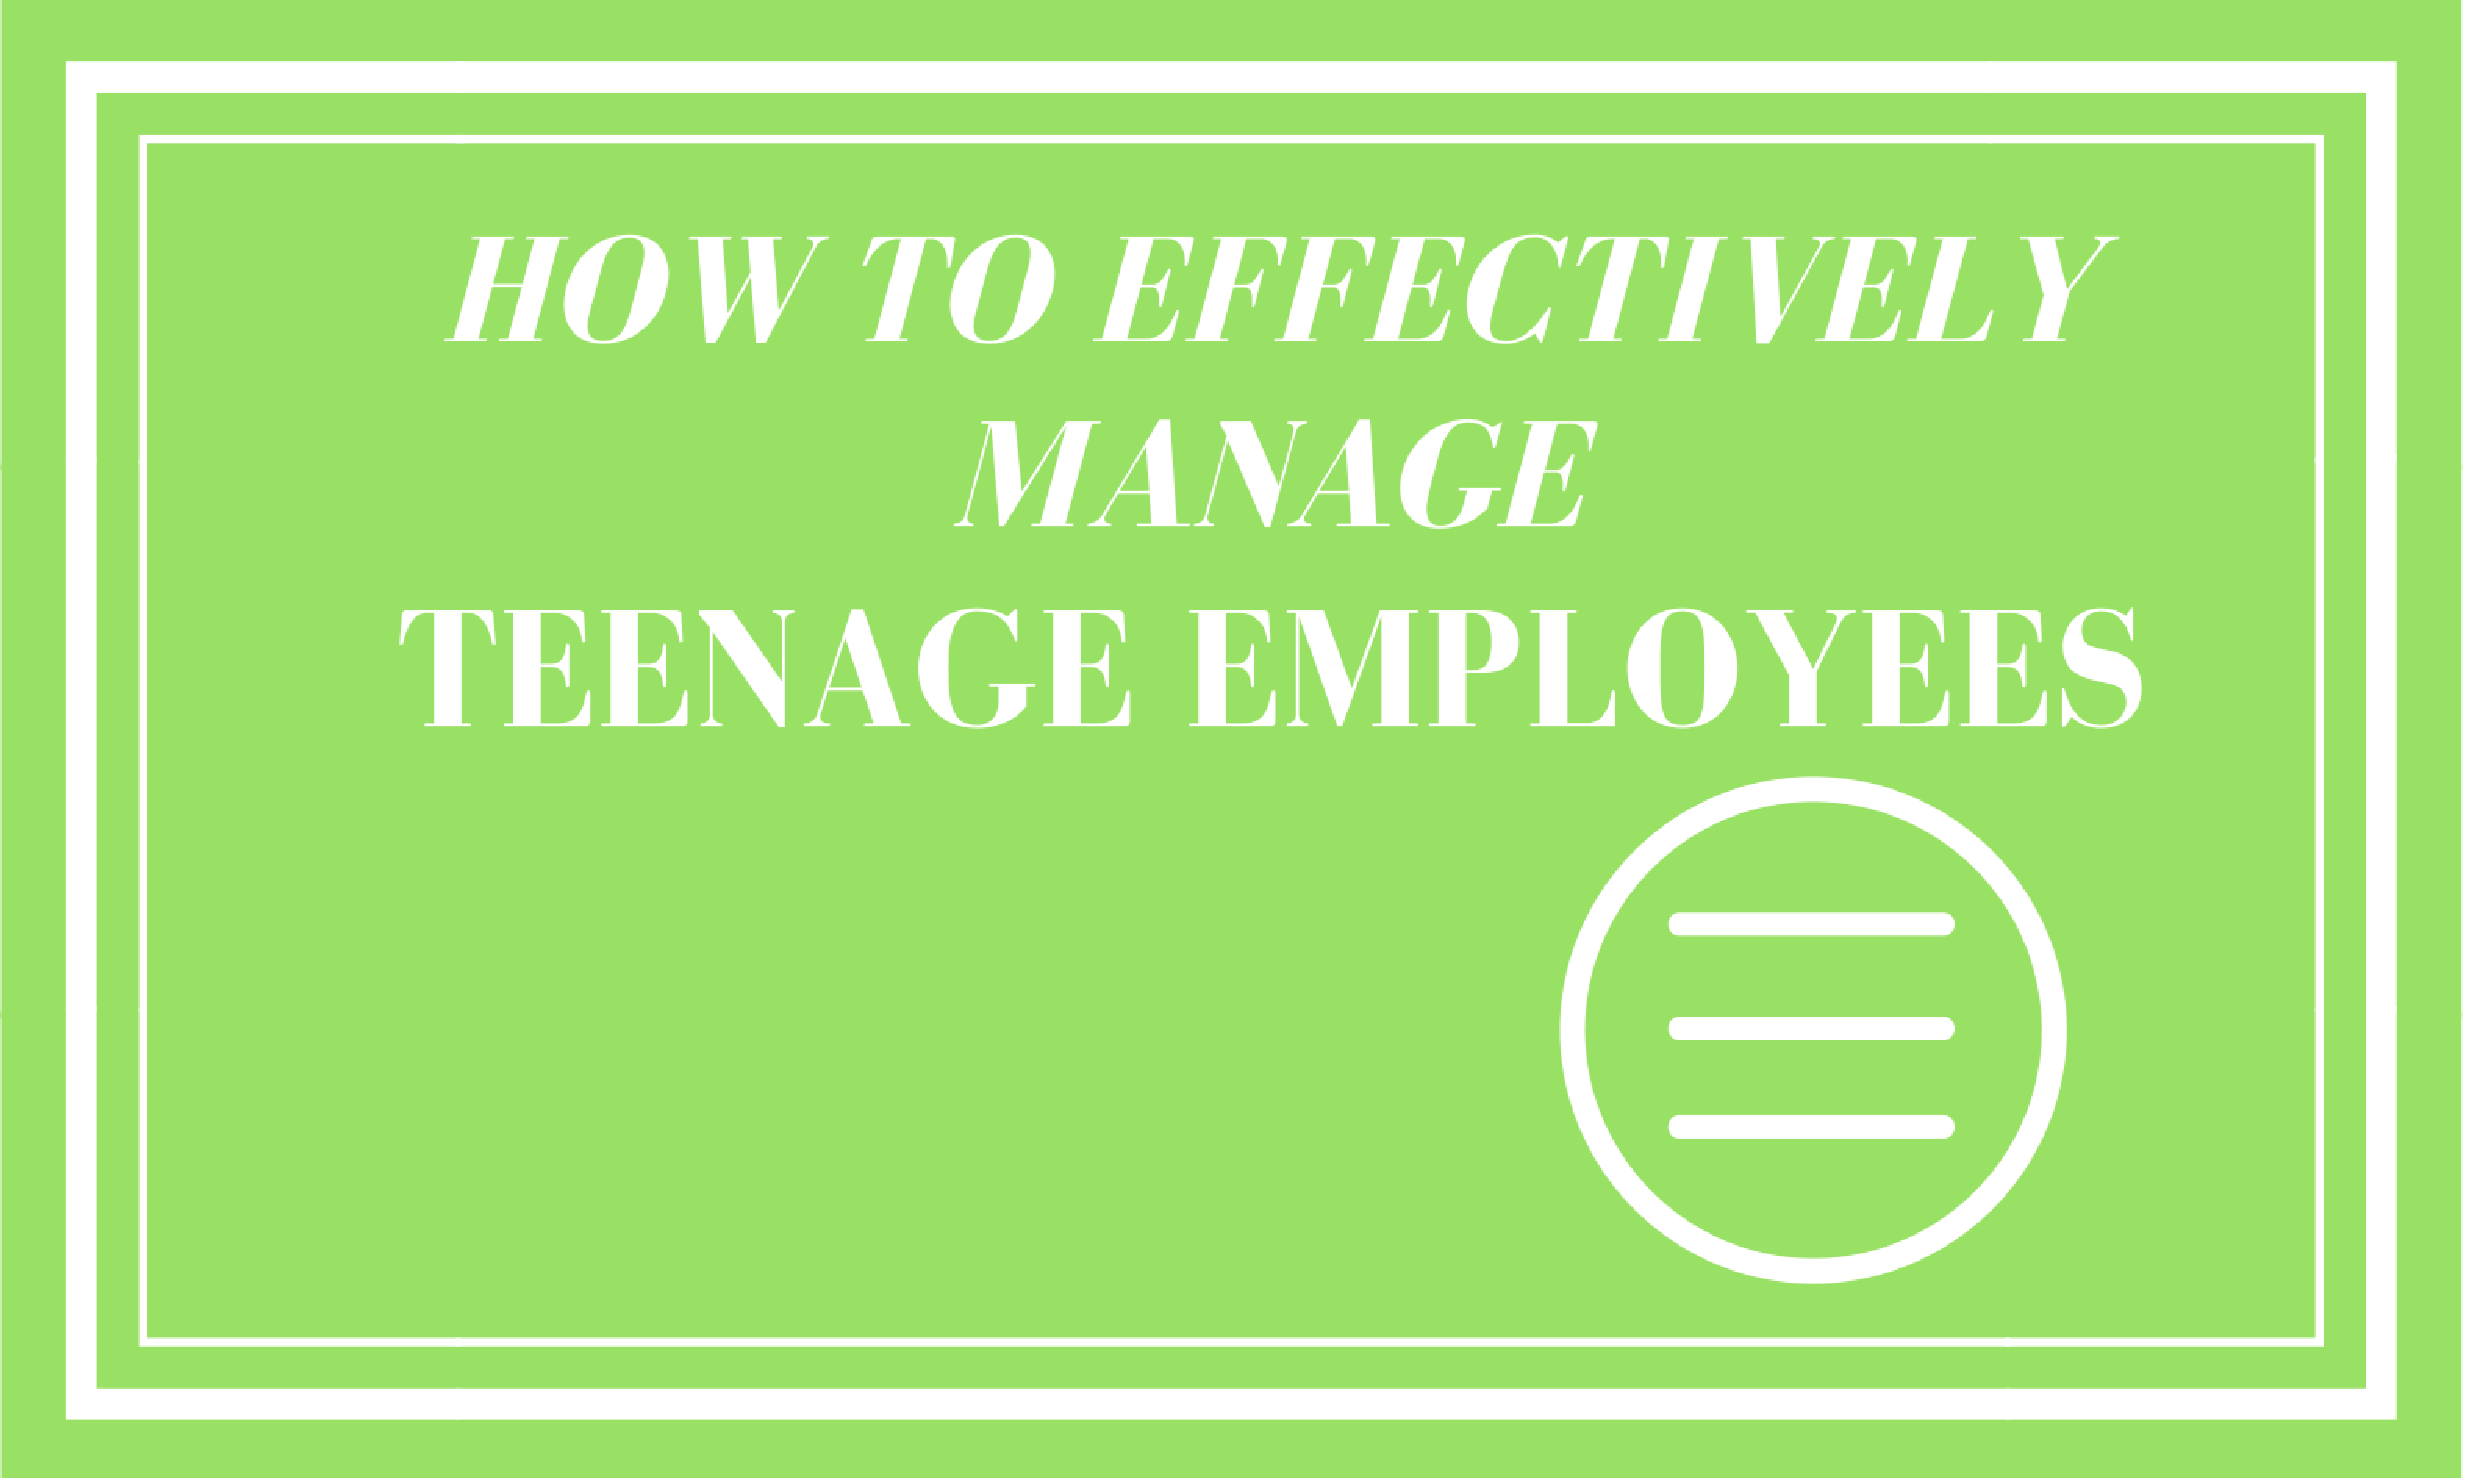 How To Effectively Manage Teenage Employees